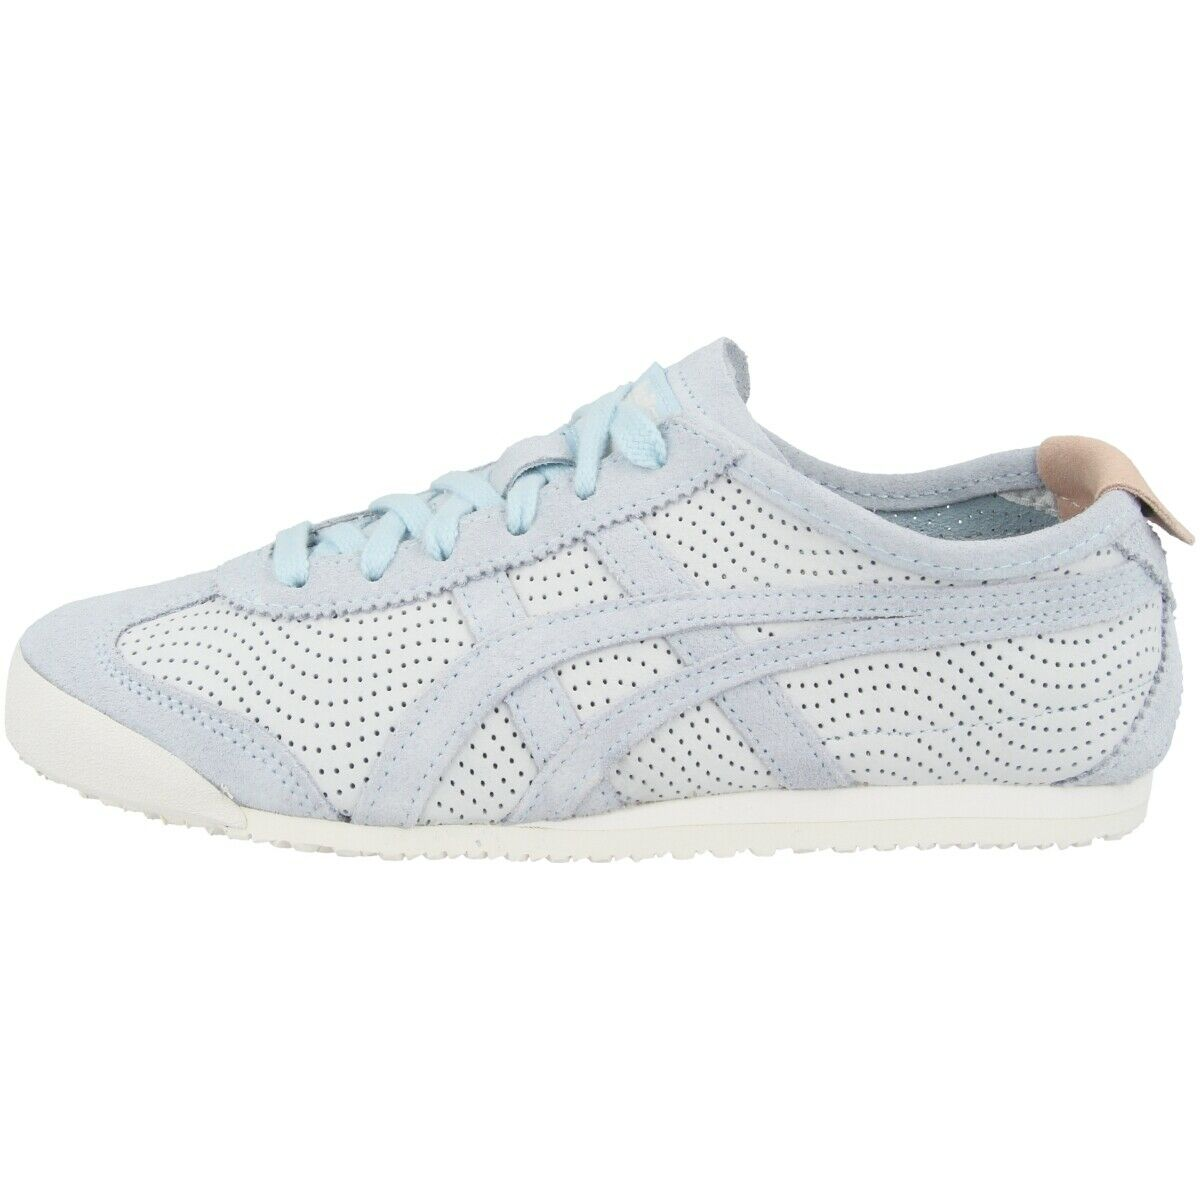 Asics Onitsuka Tiger Mexico 66 Womens Sneakers Casual Sky 1182a074-400